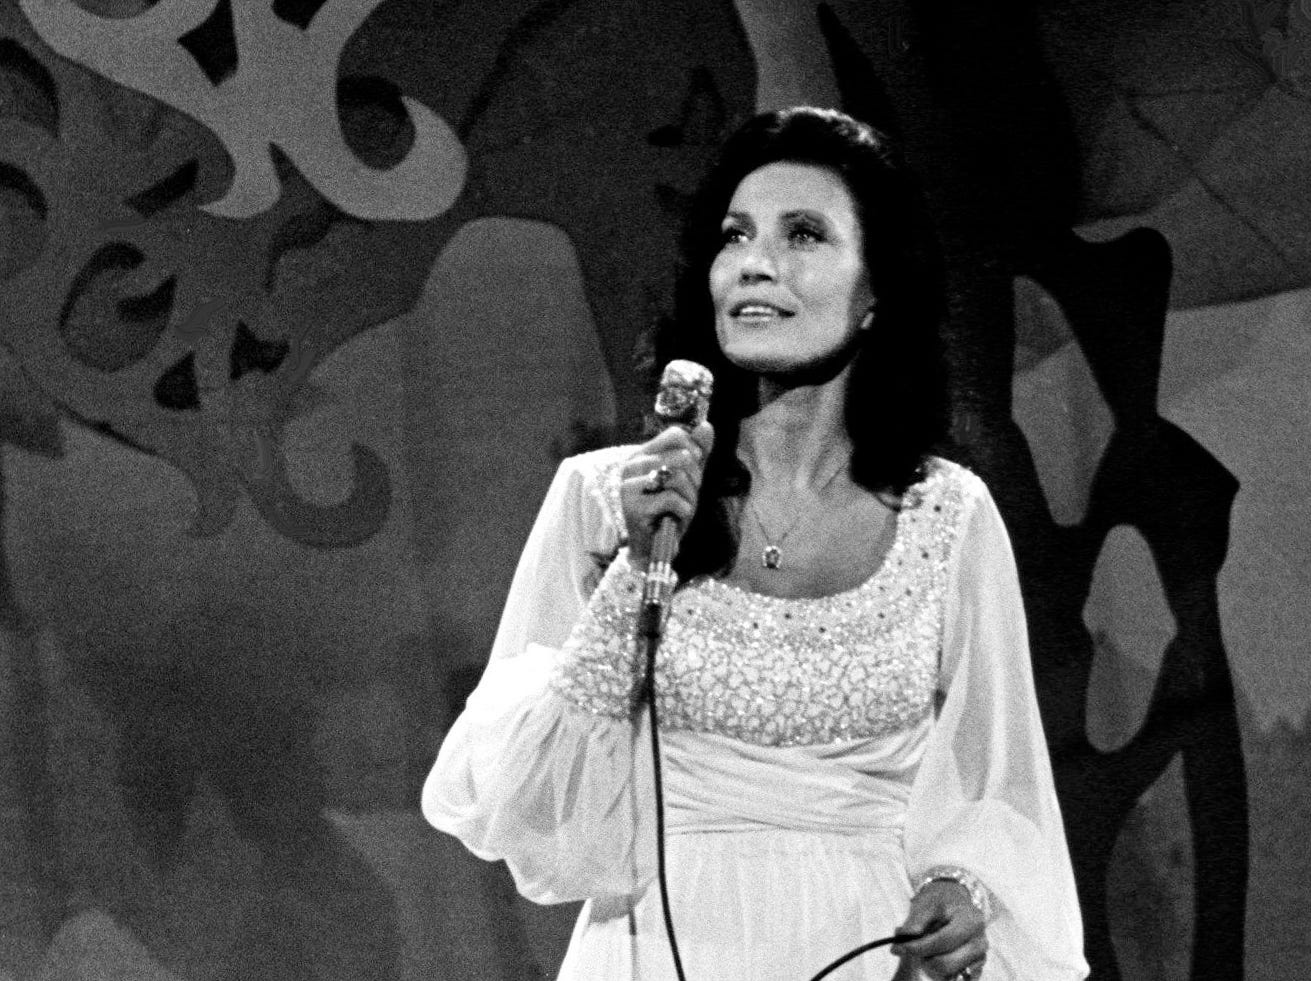 Loretta Lynn is performing for the packed crowd at the nationally televised CMA Awards show at the Grand Ole Opry House Oct. 13, 1975.